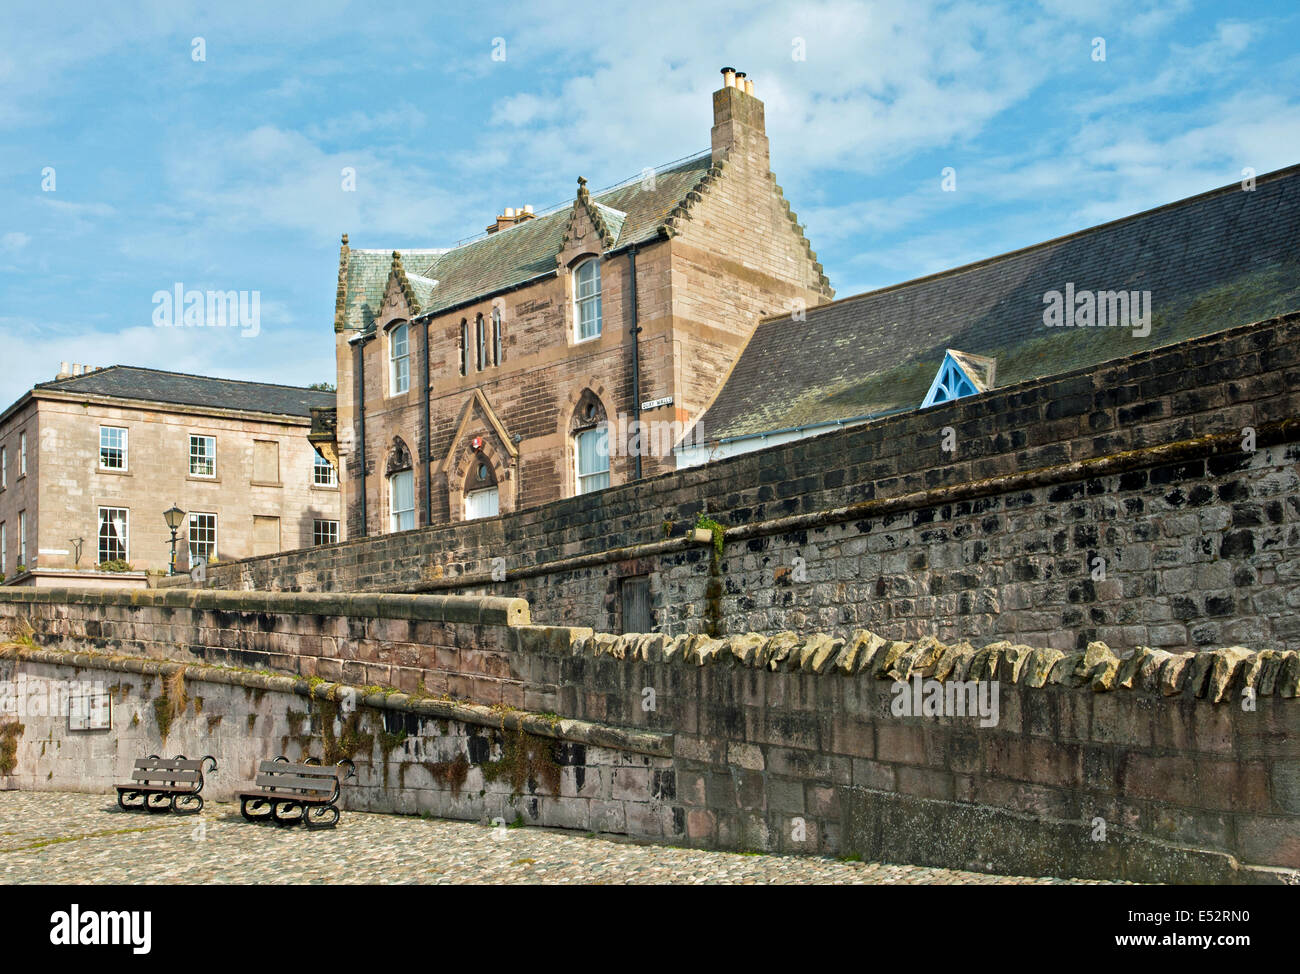 The Quay Walls at Berwick on Tweed Northumberland North of England near the Scottish Border - Stock Image